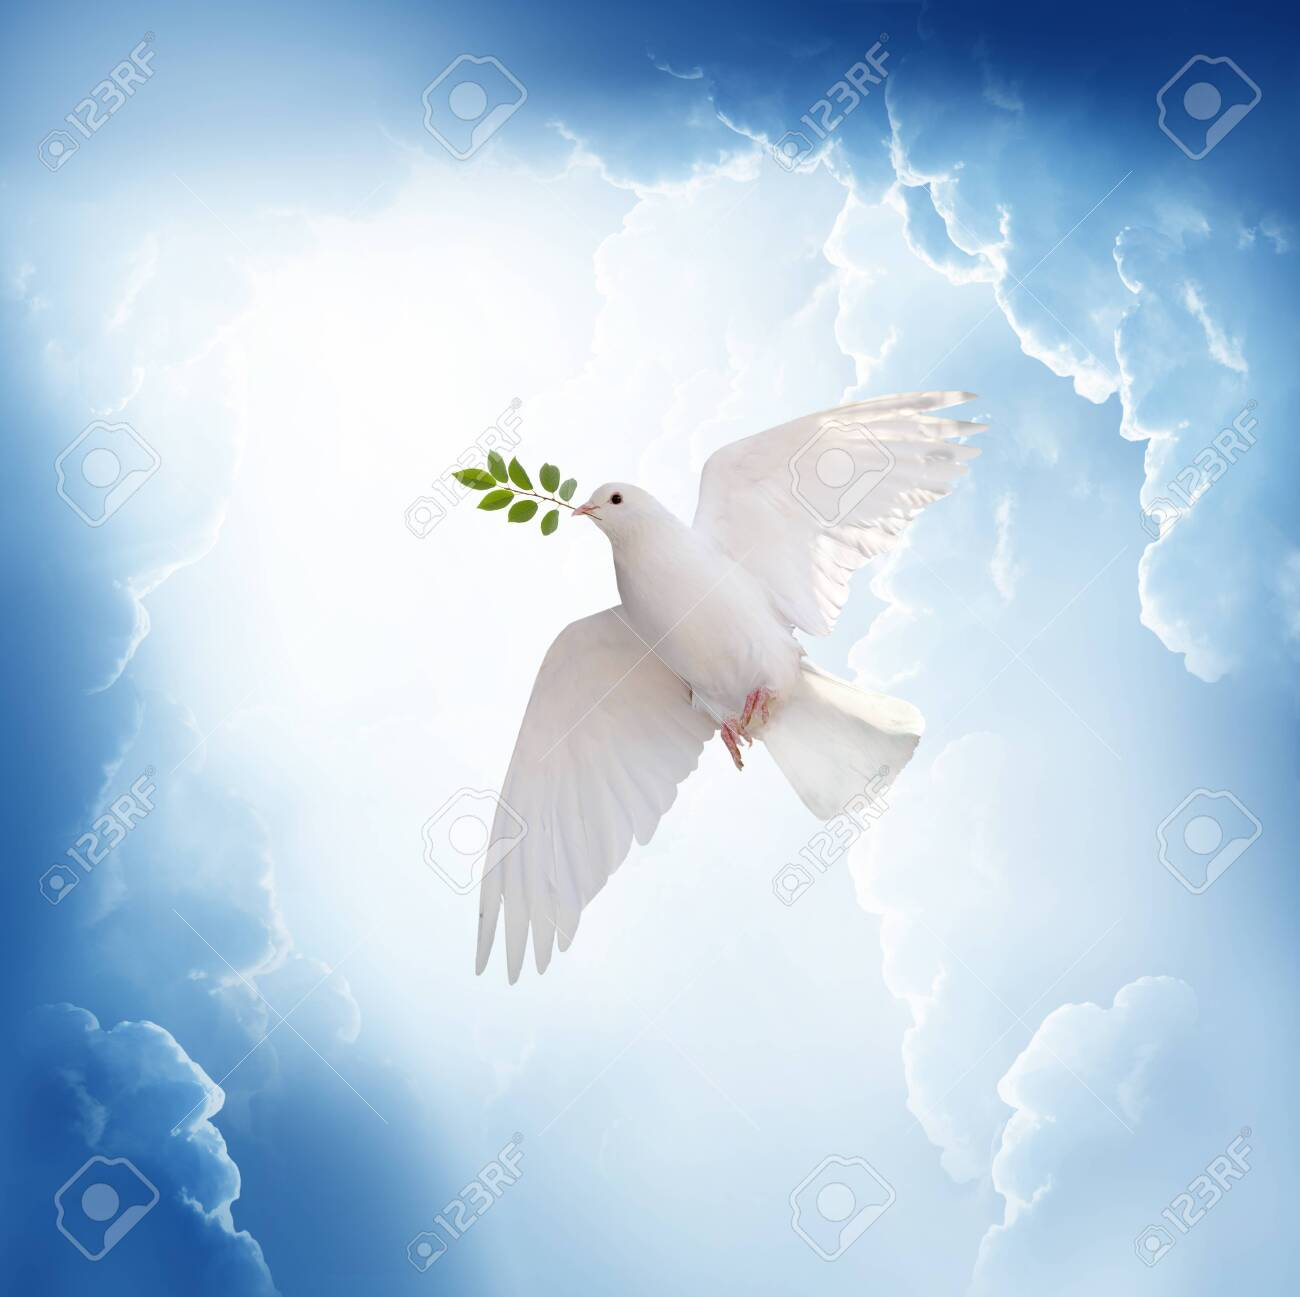 A free white dove holding green leaf branch flying in the sky.International Day of Peace concept background - 130015341